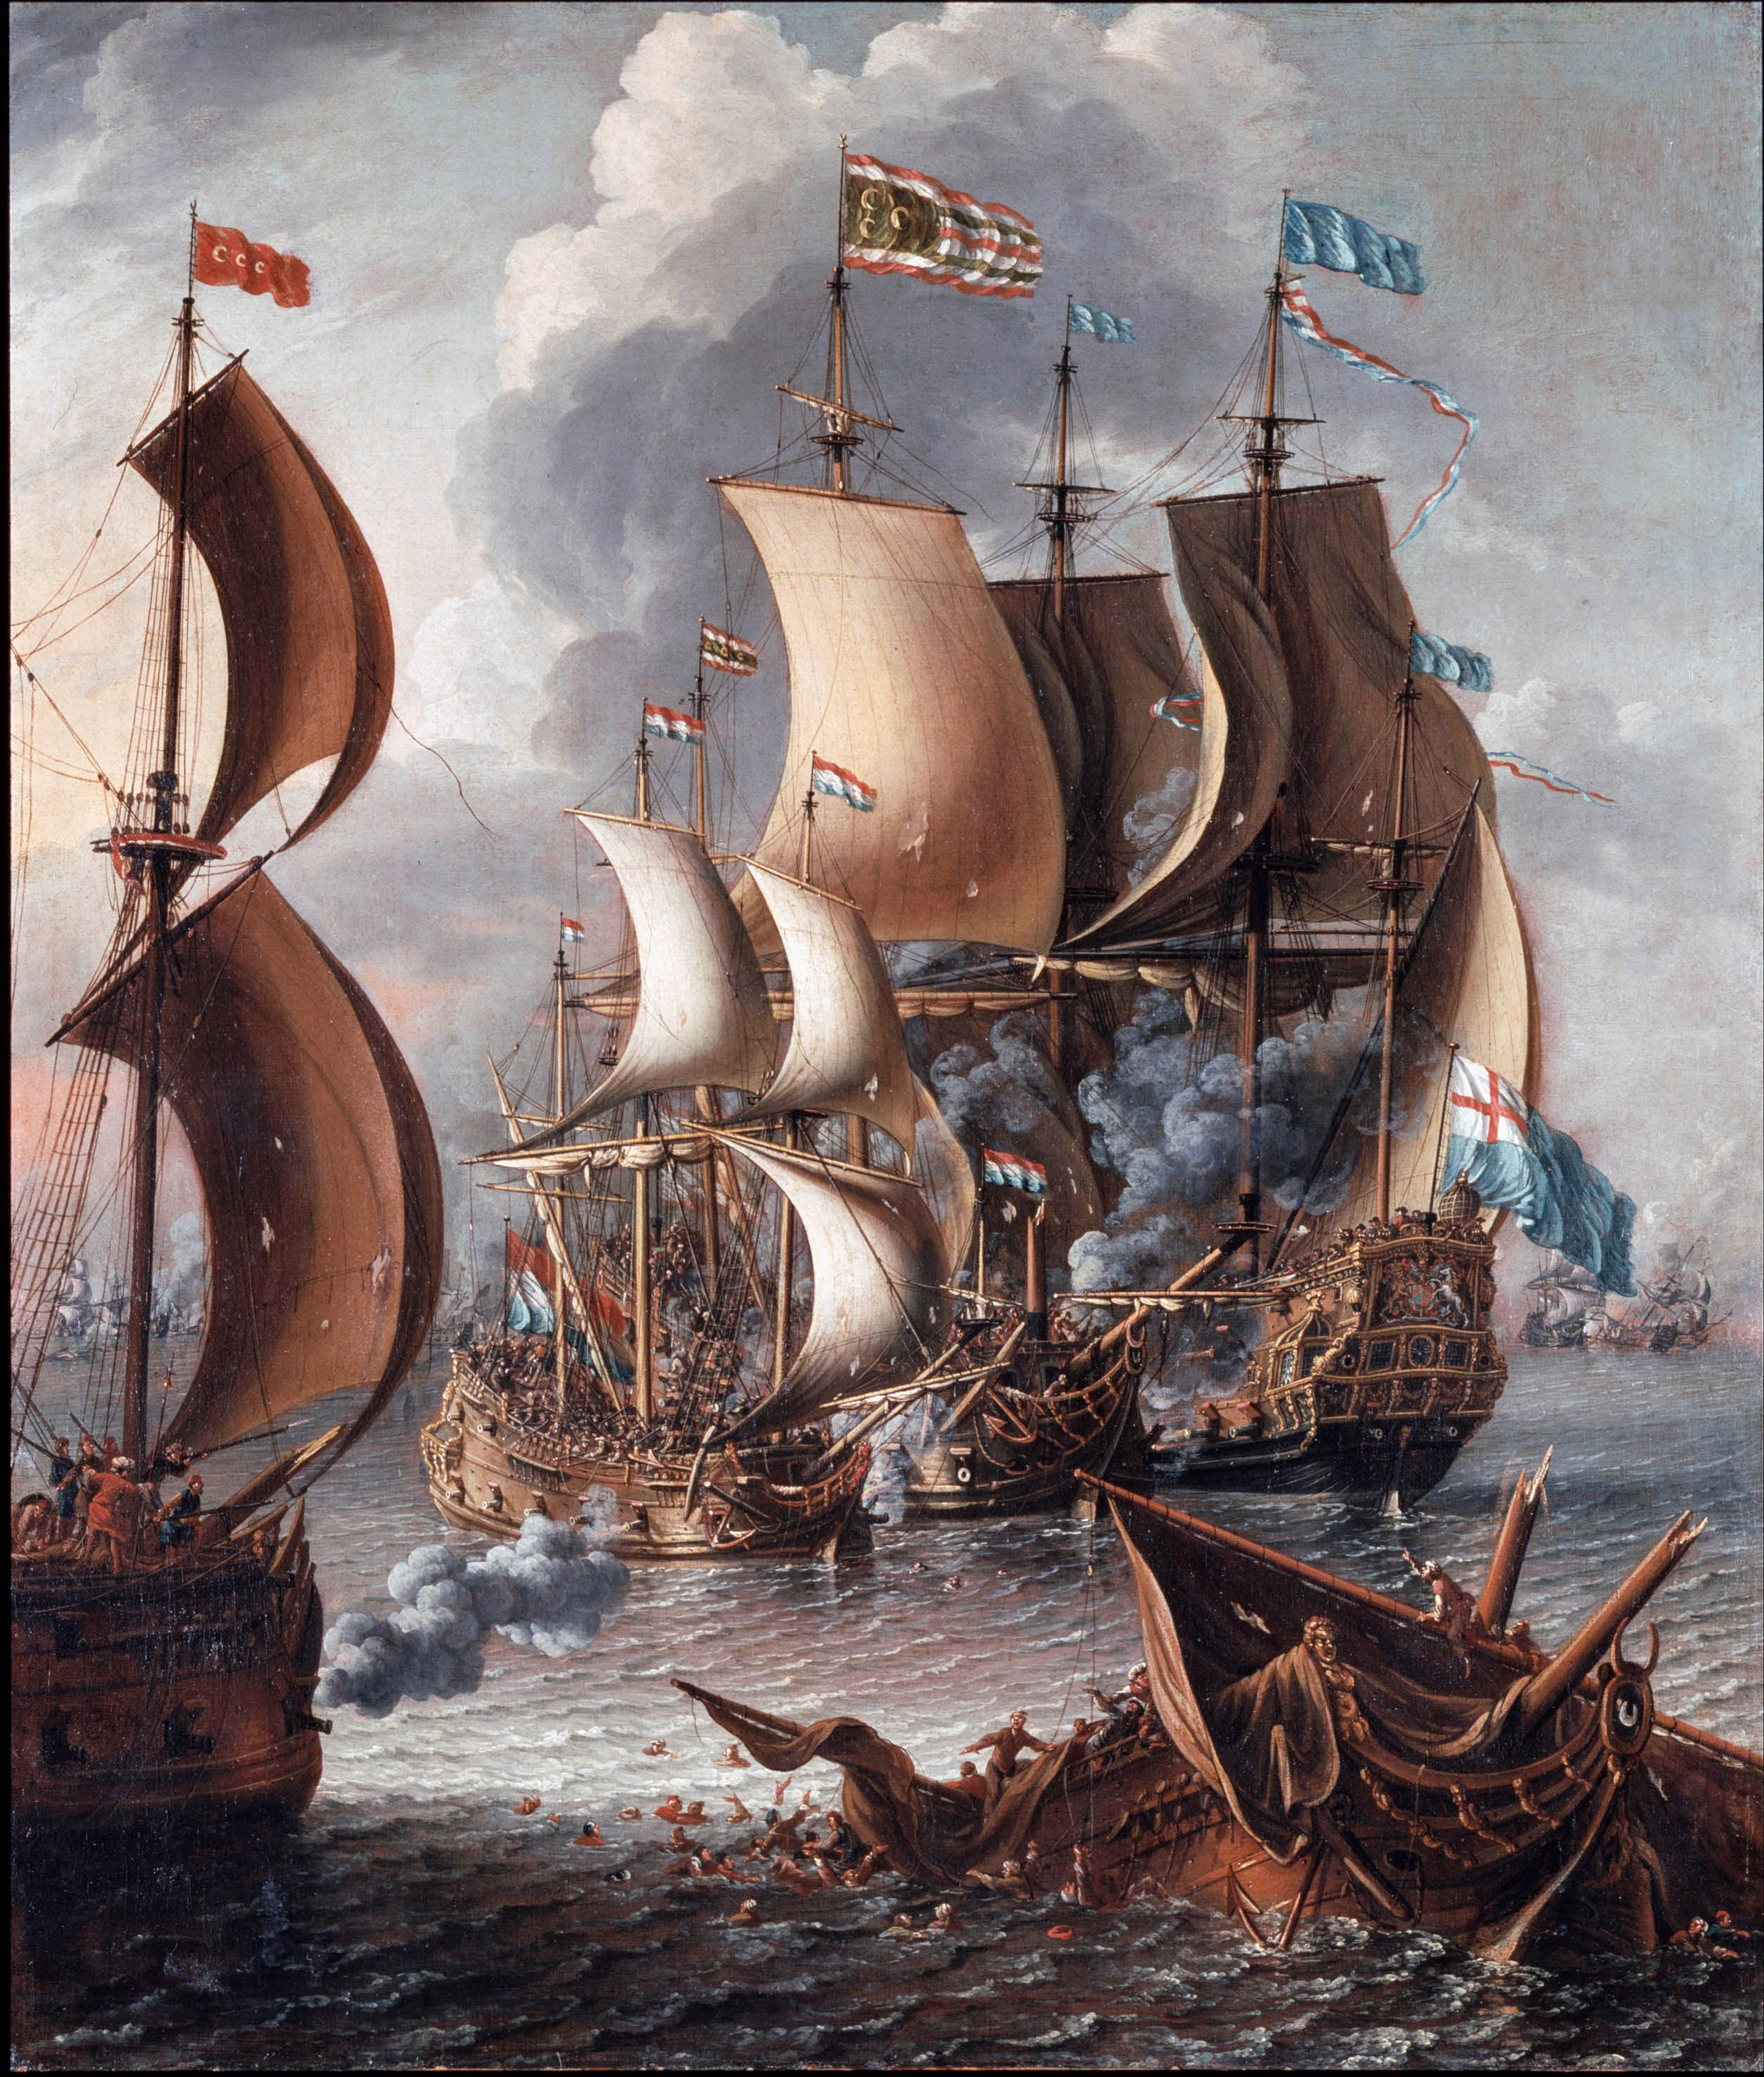 A Sea Fight with Barbary Corsairs by Lorenzo A Castro, 17th century